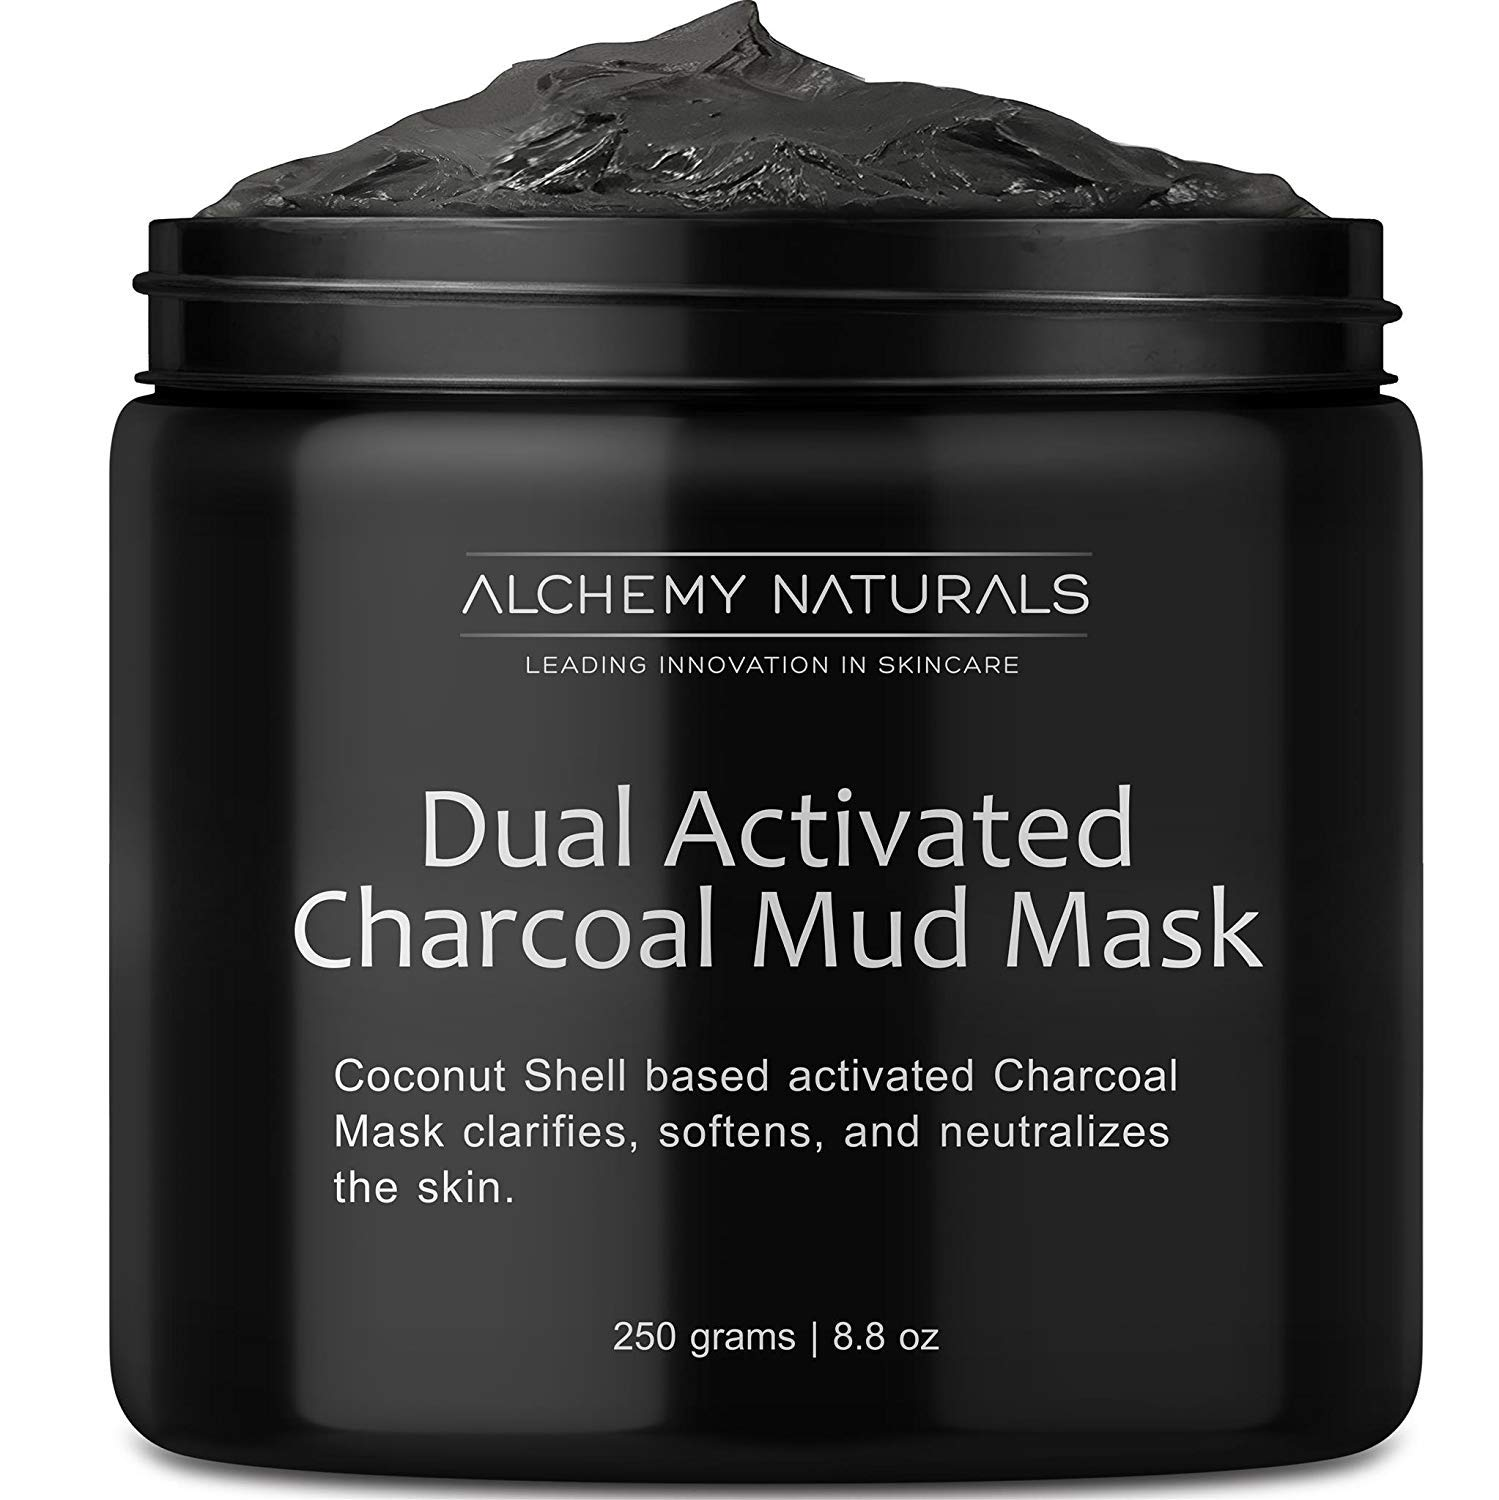 Alchemy 100% Natural Premium Spa Quality Dual Activated Age Defying Charcoal Mud Mask Facial Treatment Cleanser Minimizer for, Acne, Blackheads, Scars, Cellulite - 8.8oz by Alchemy